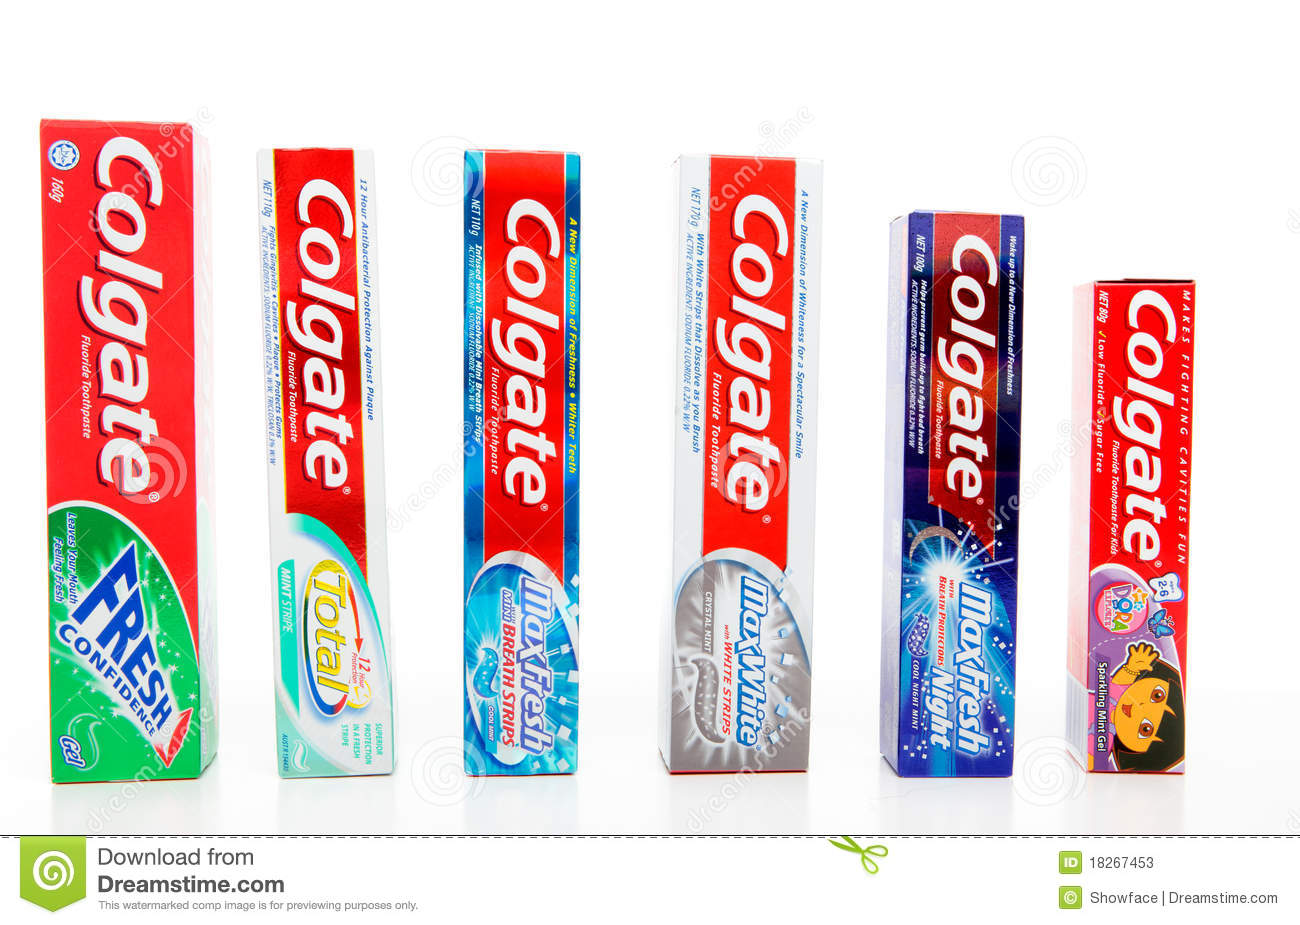 How to Choose the Best Toothpaste